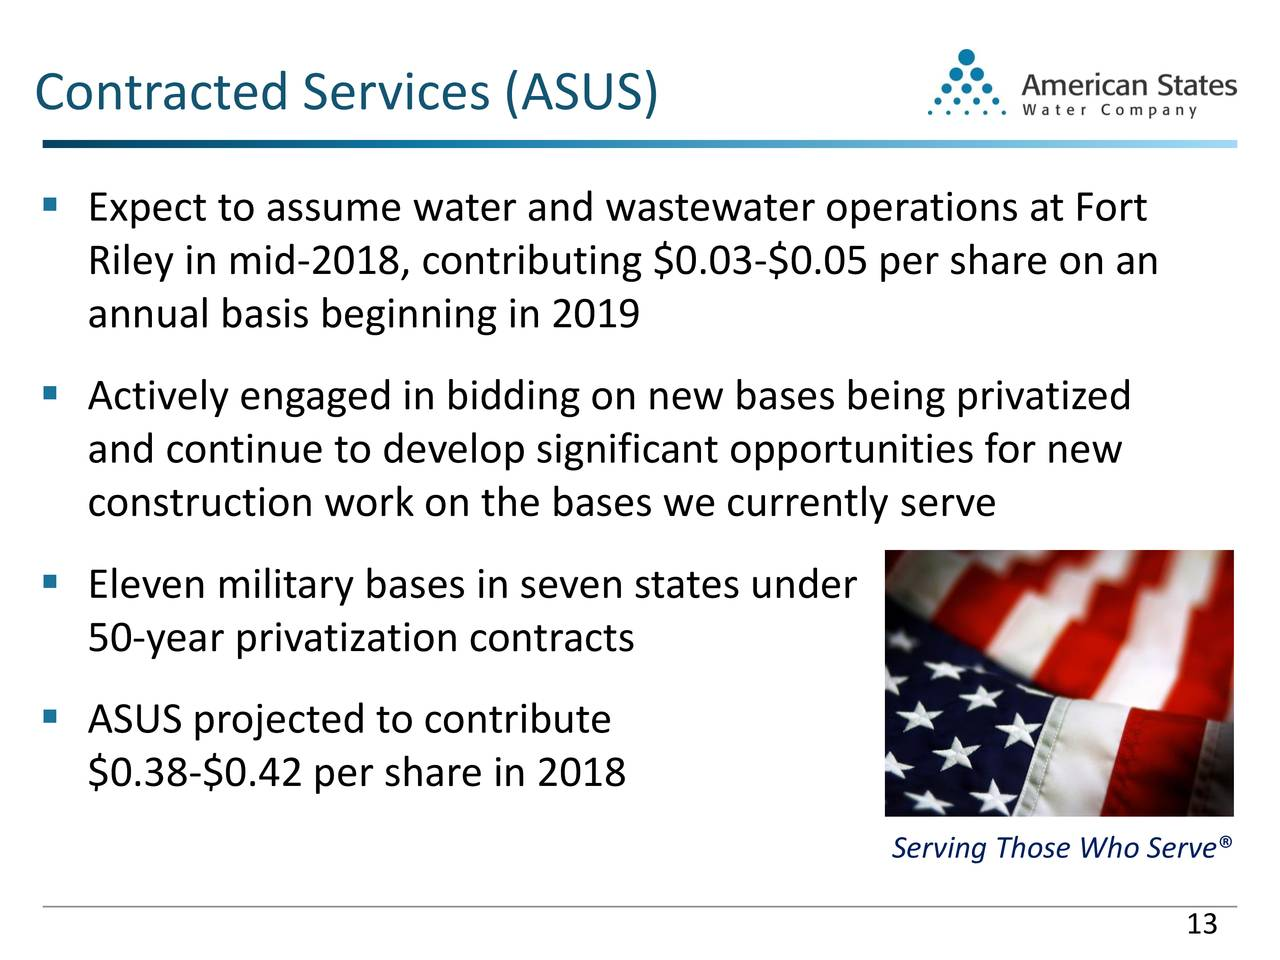 American States Water Co 2018 Q1 Results Earnings Call Slides